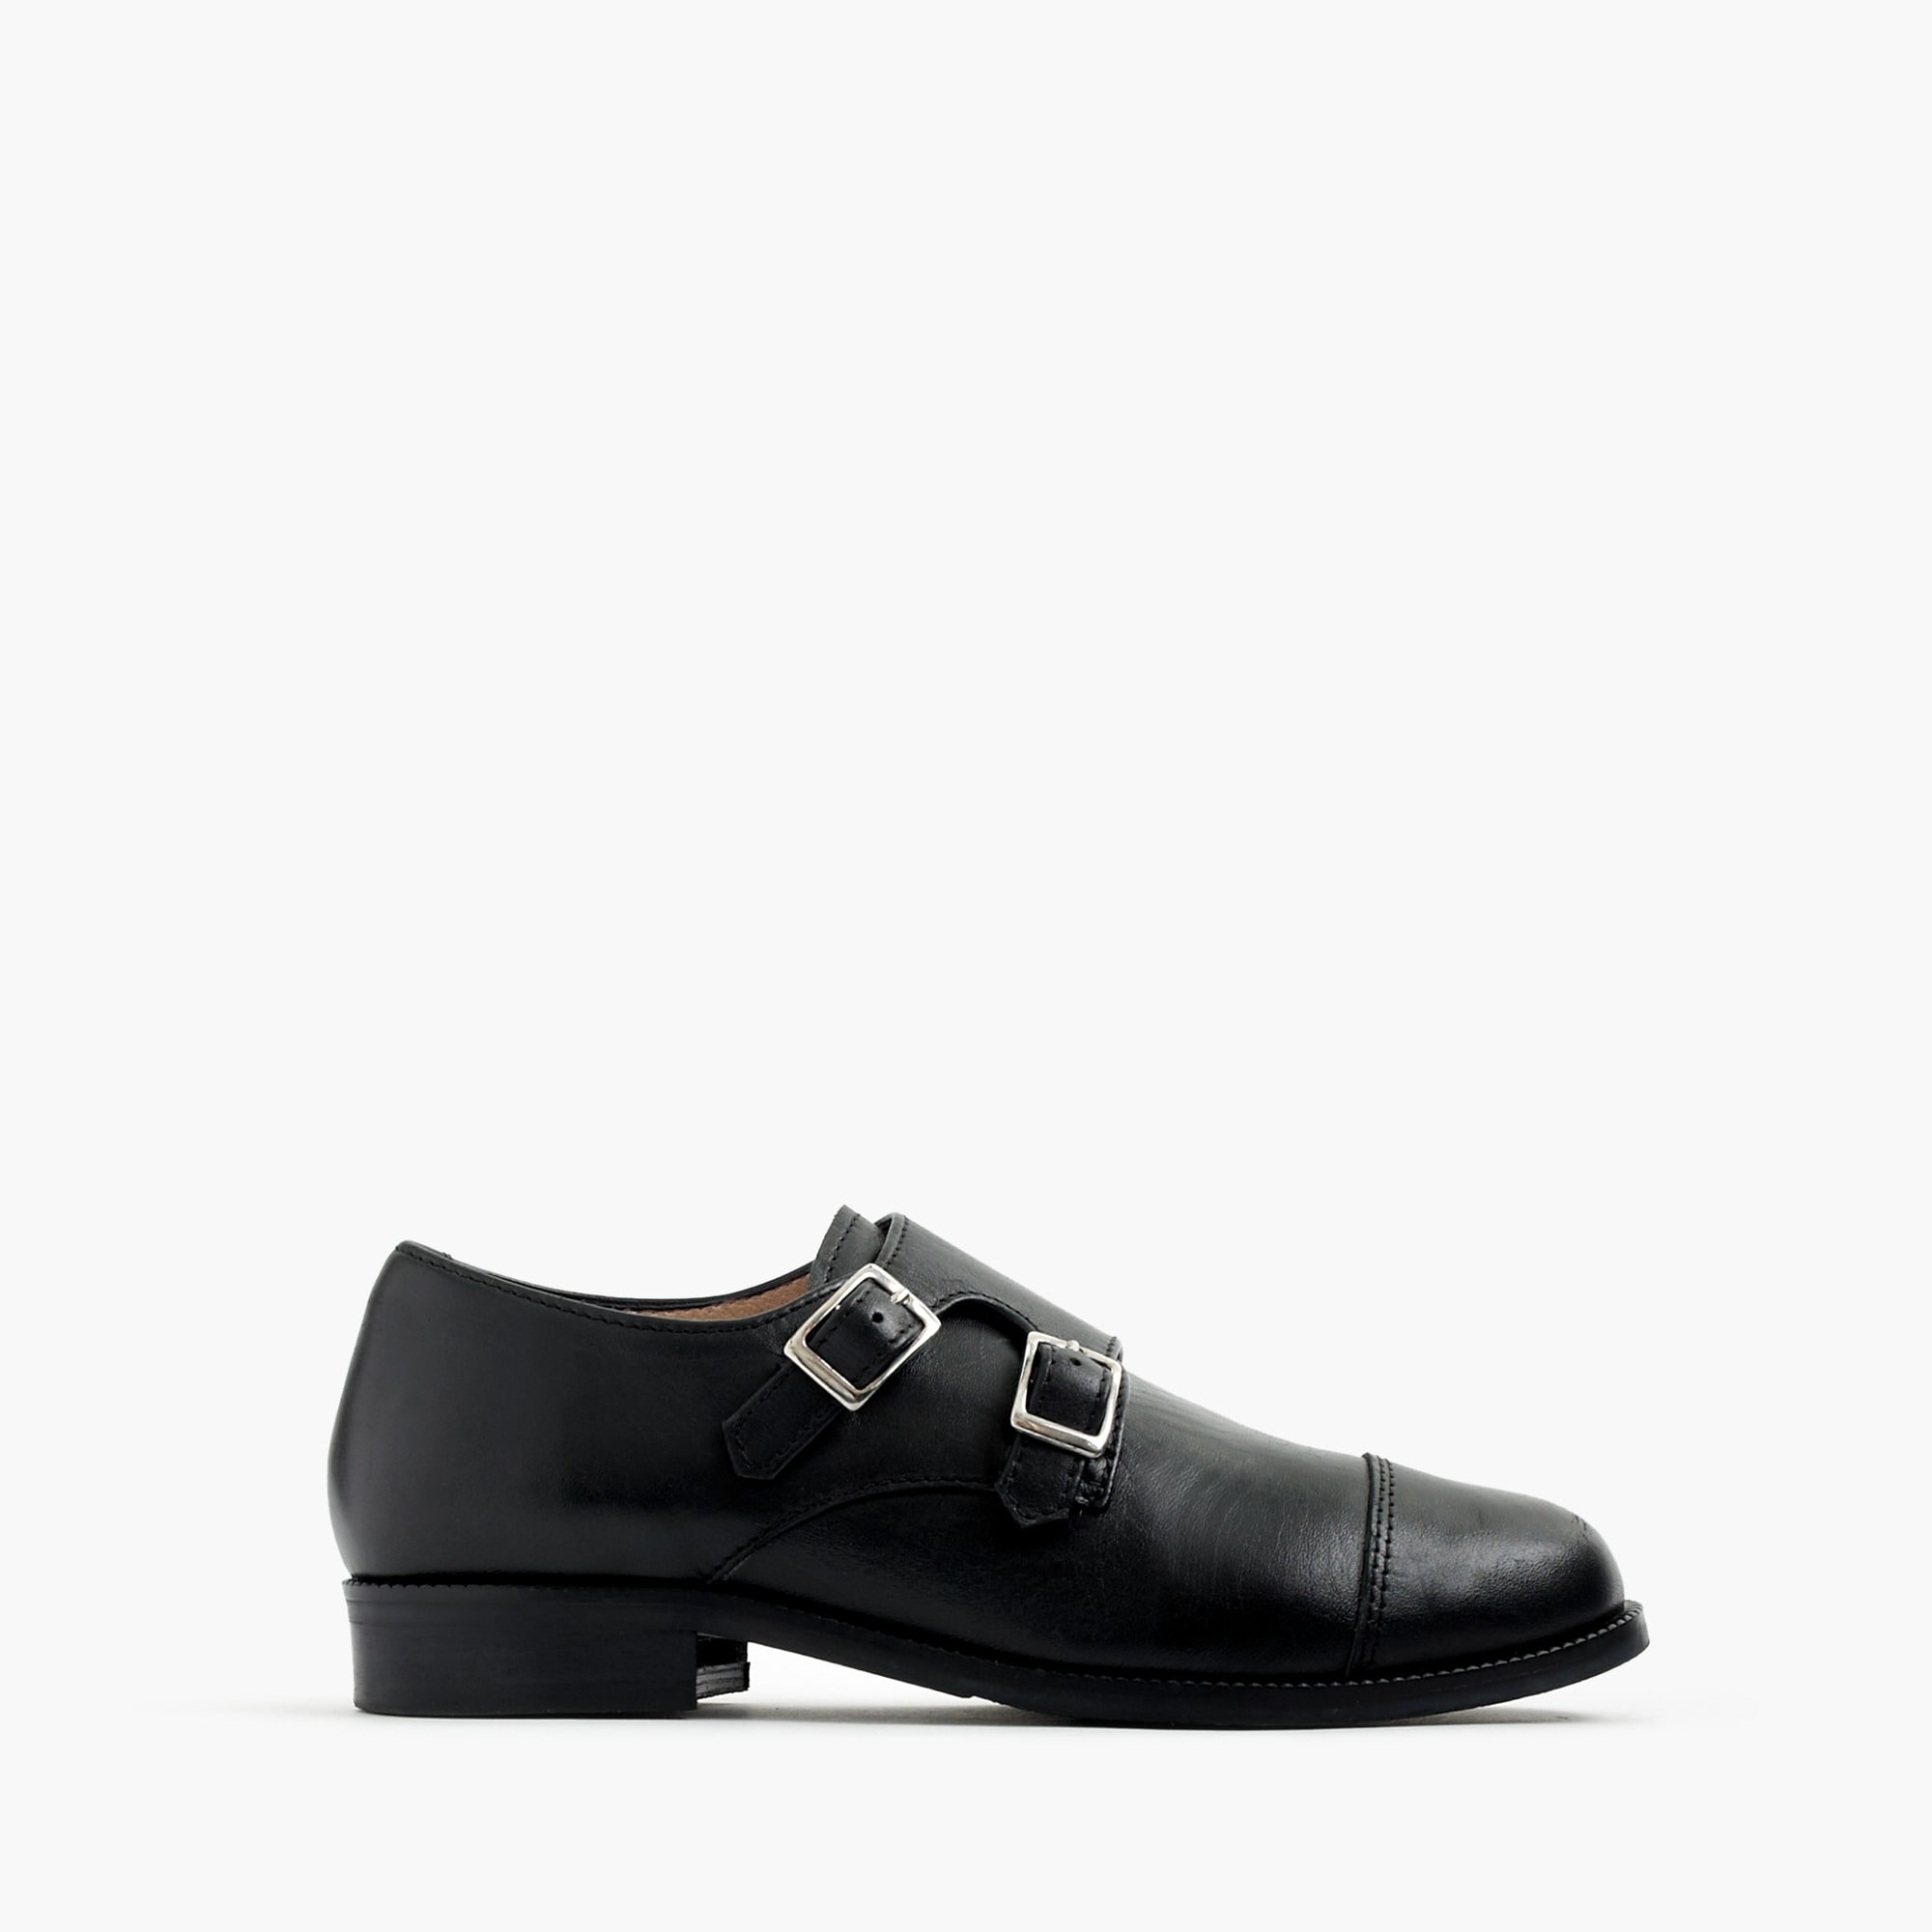 kids' double monk strap shoes : boy dress shoes